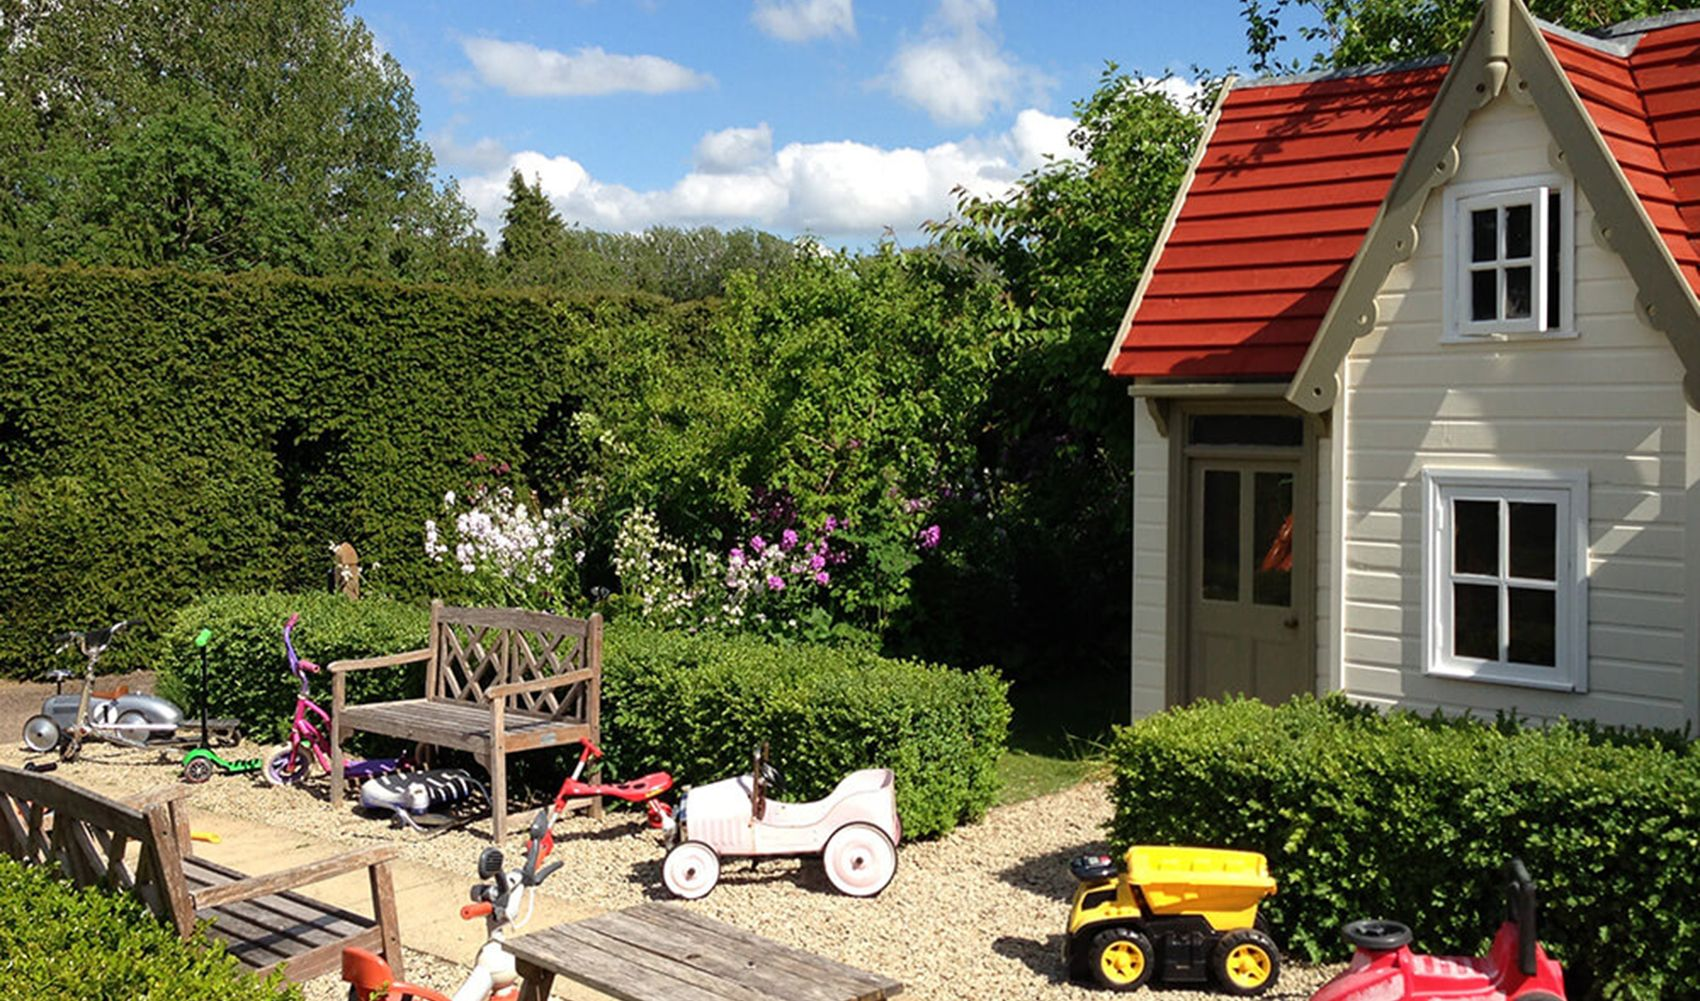 Shared walled garden with elegant two-storey wendy house